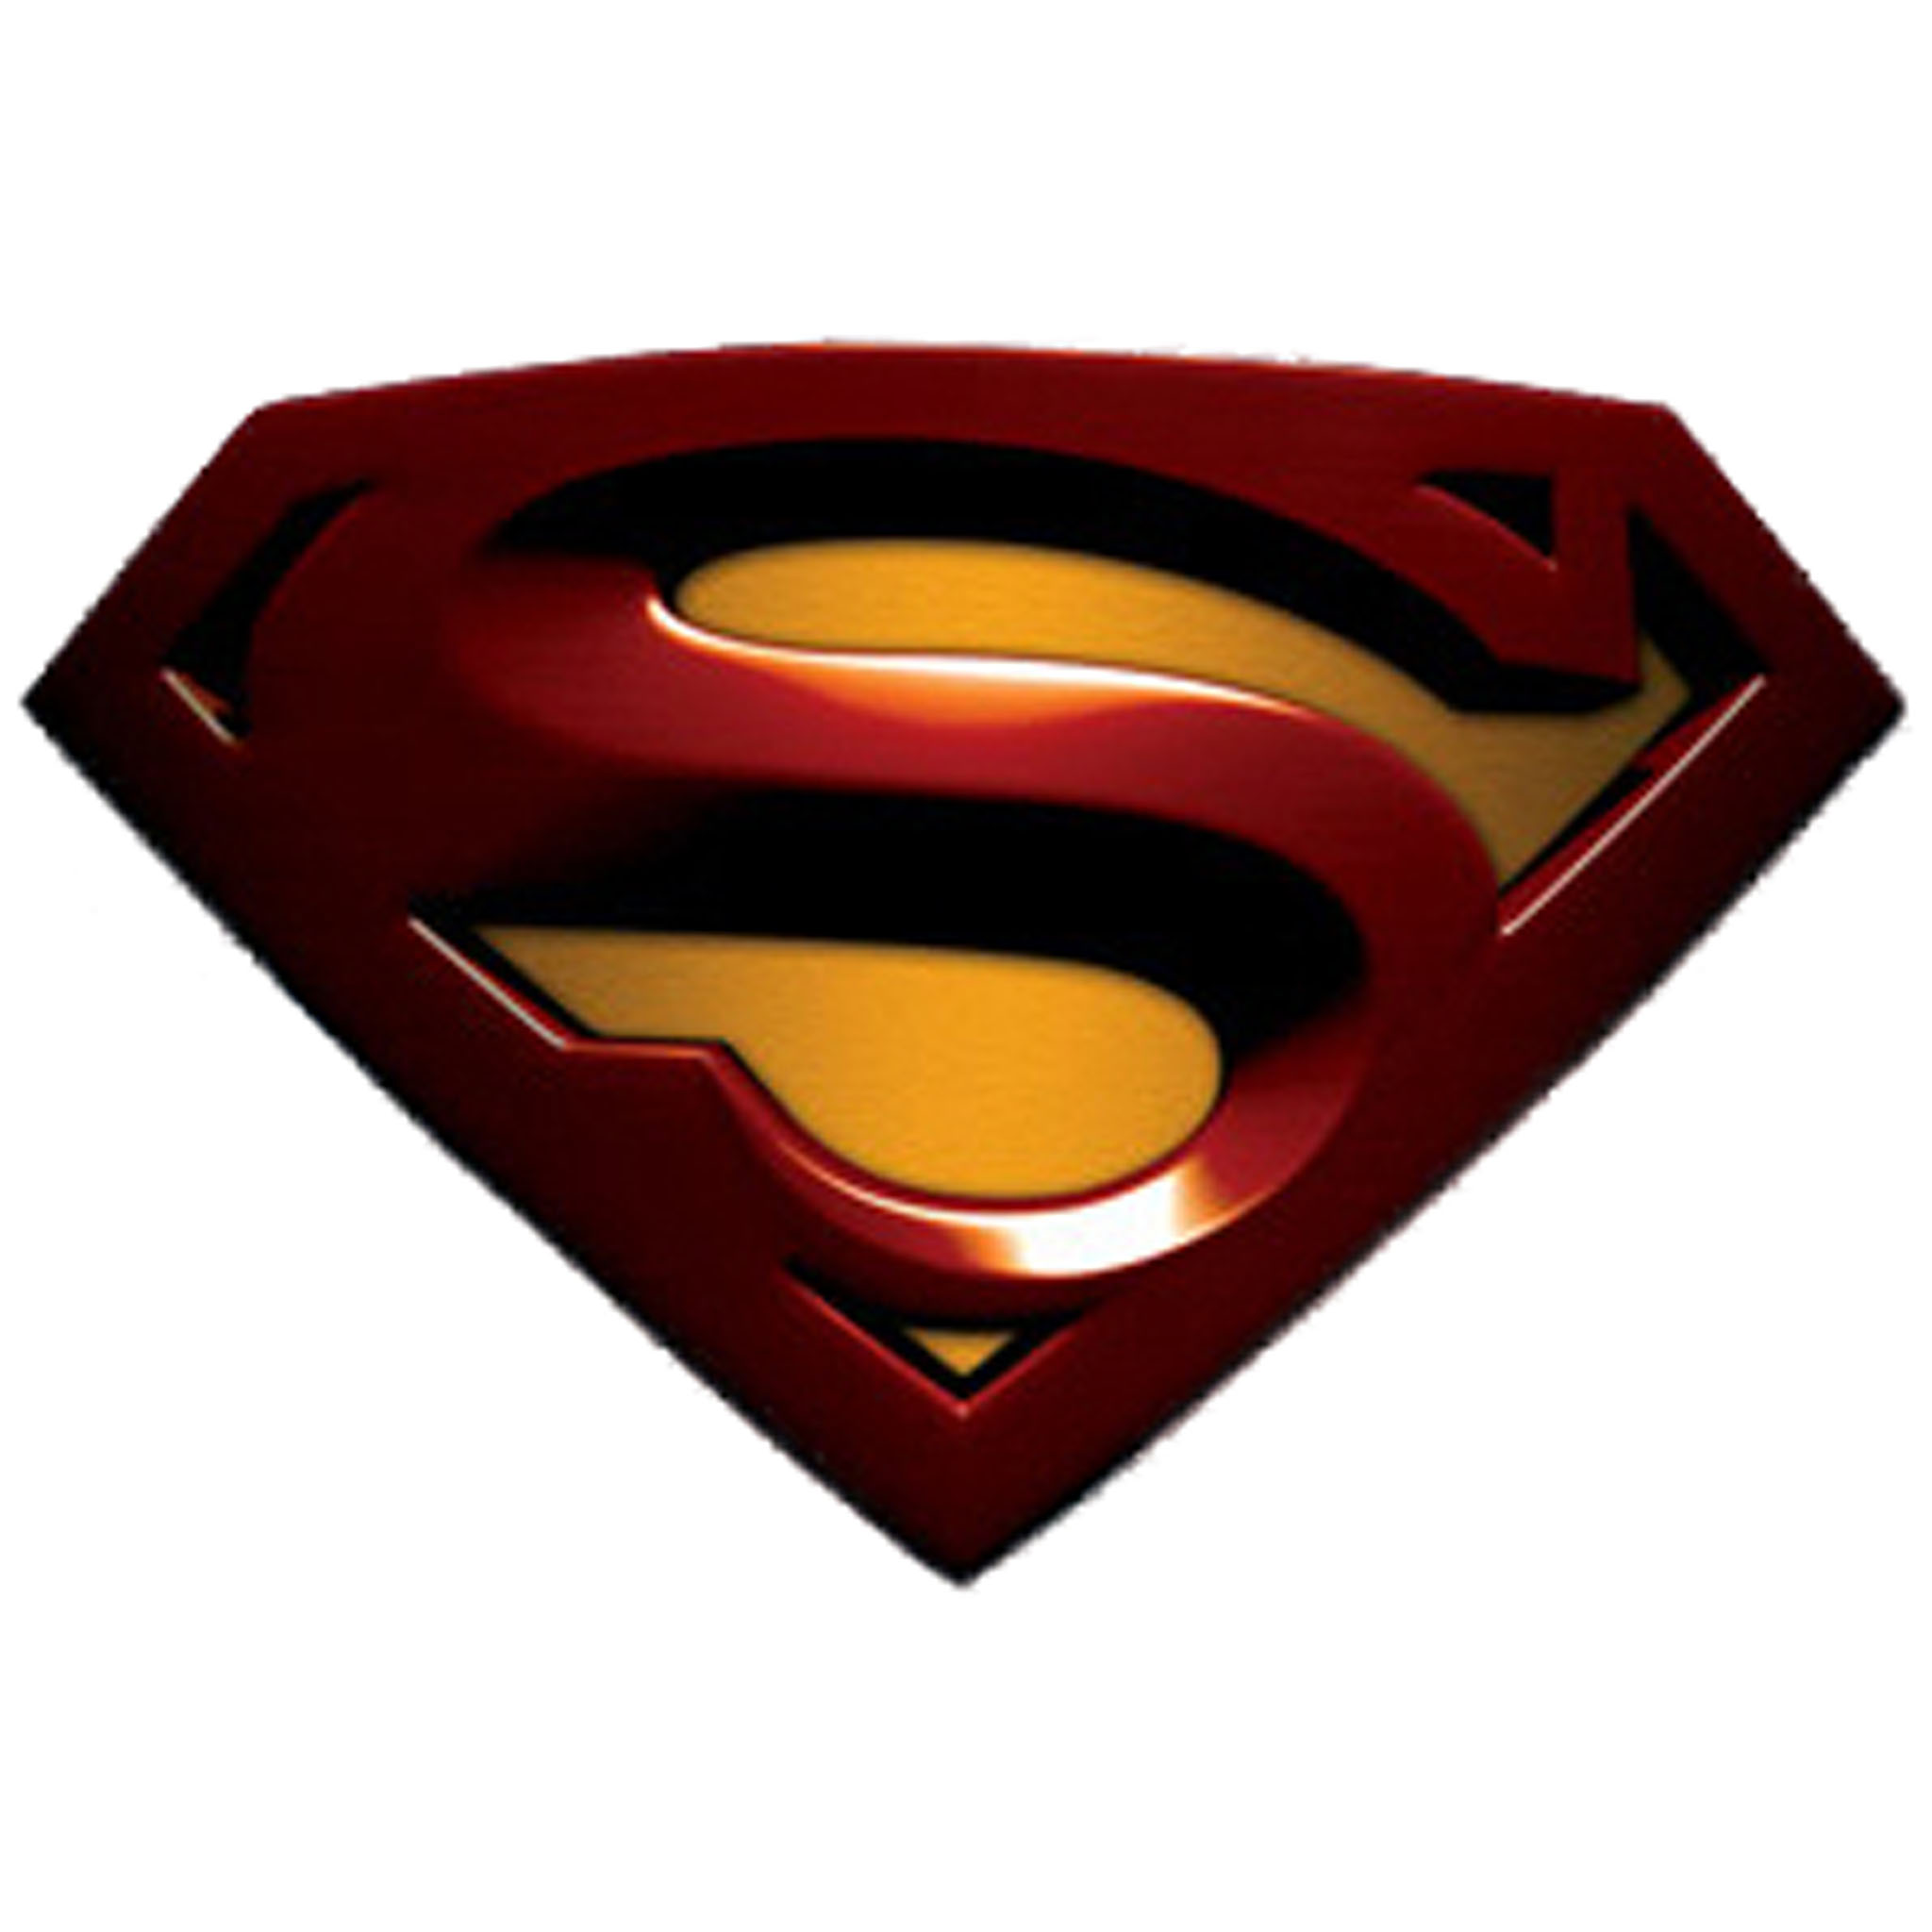 Superman clipart hd svg library Superman clipart hd download clipartfox – Gclipart.com svg library